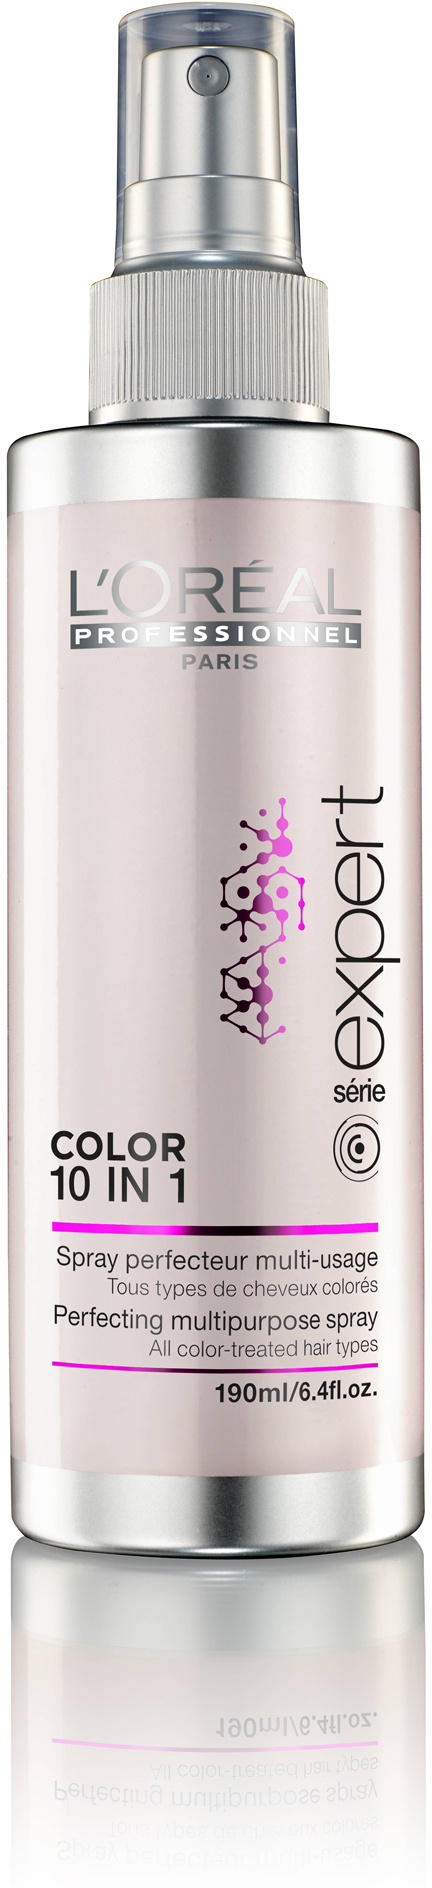 L'Oréal Professionnel Vitamino Color AOX 10in1